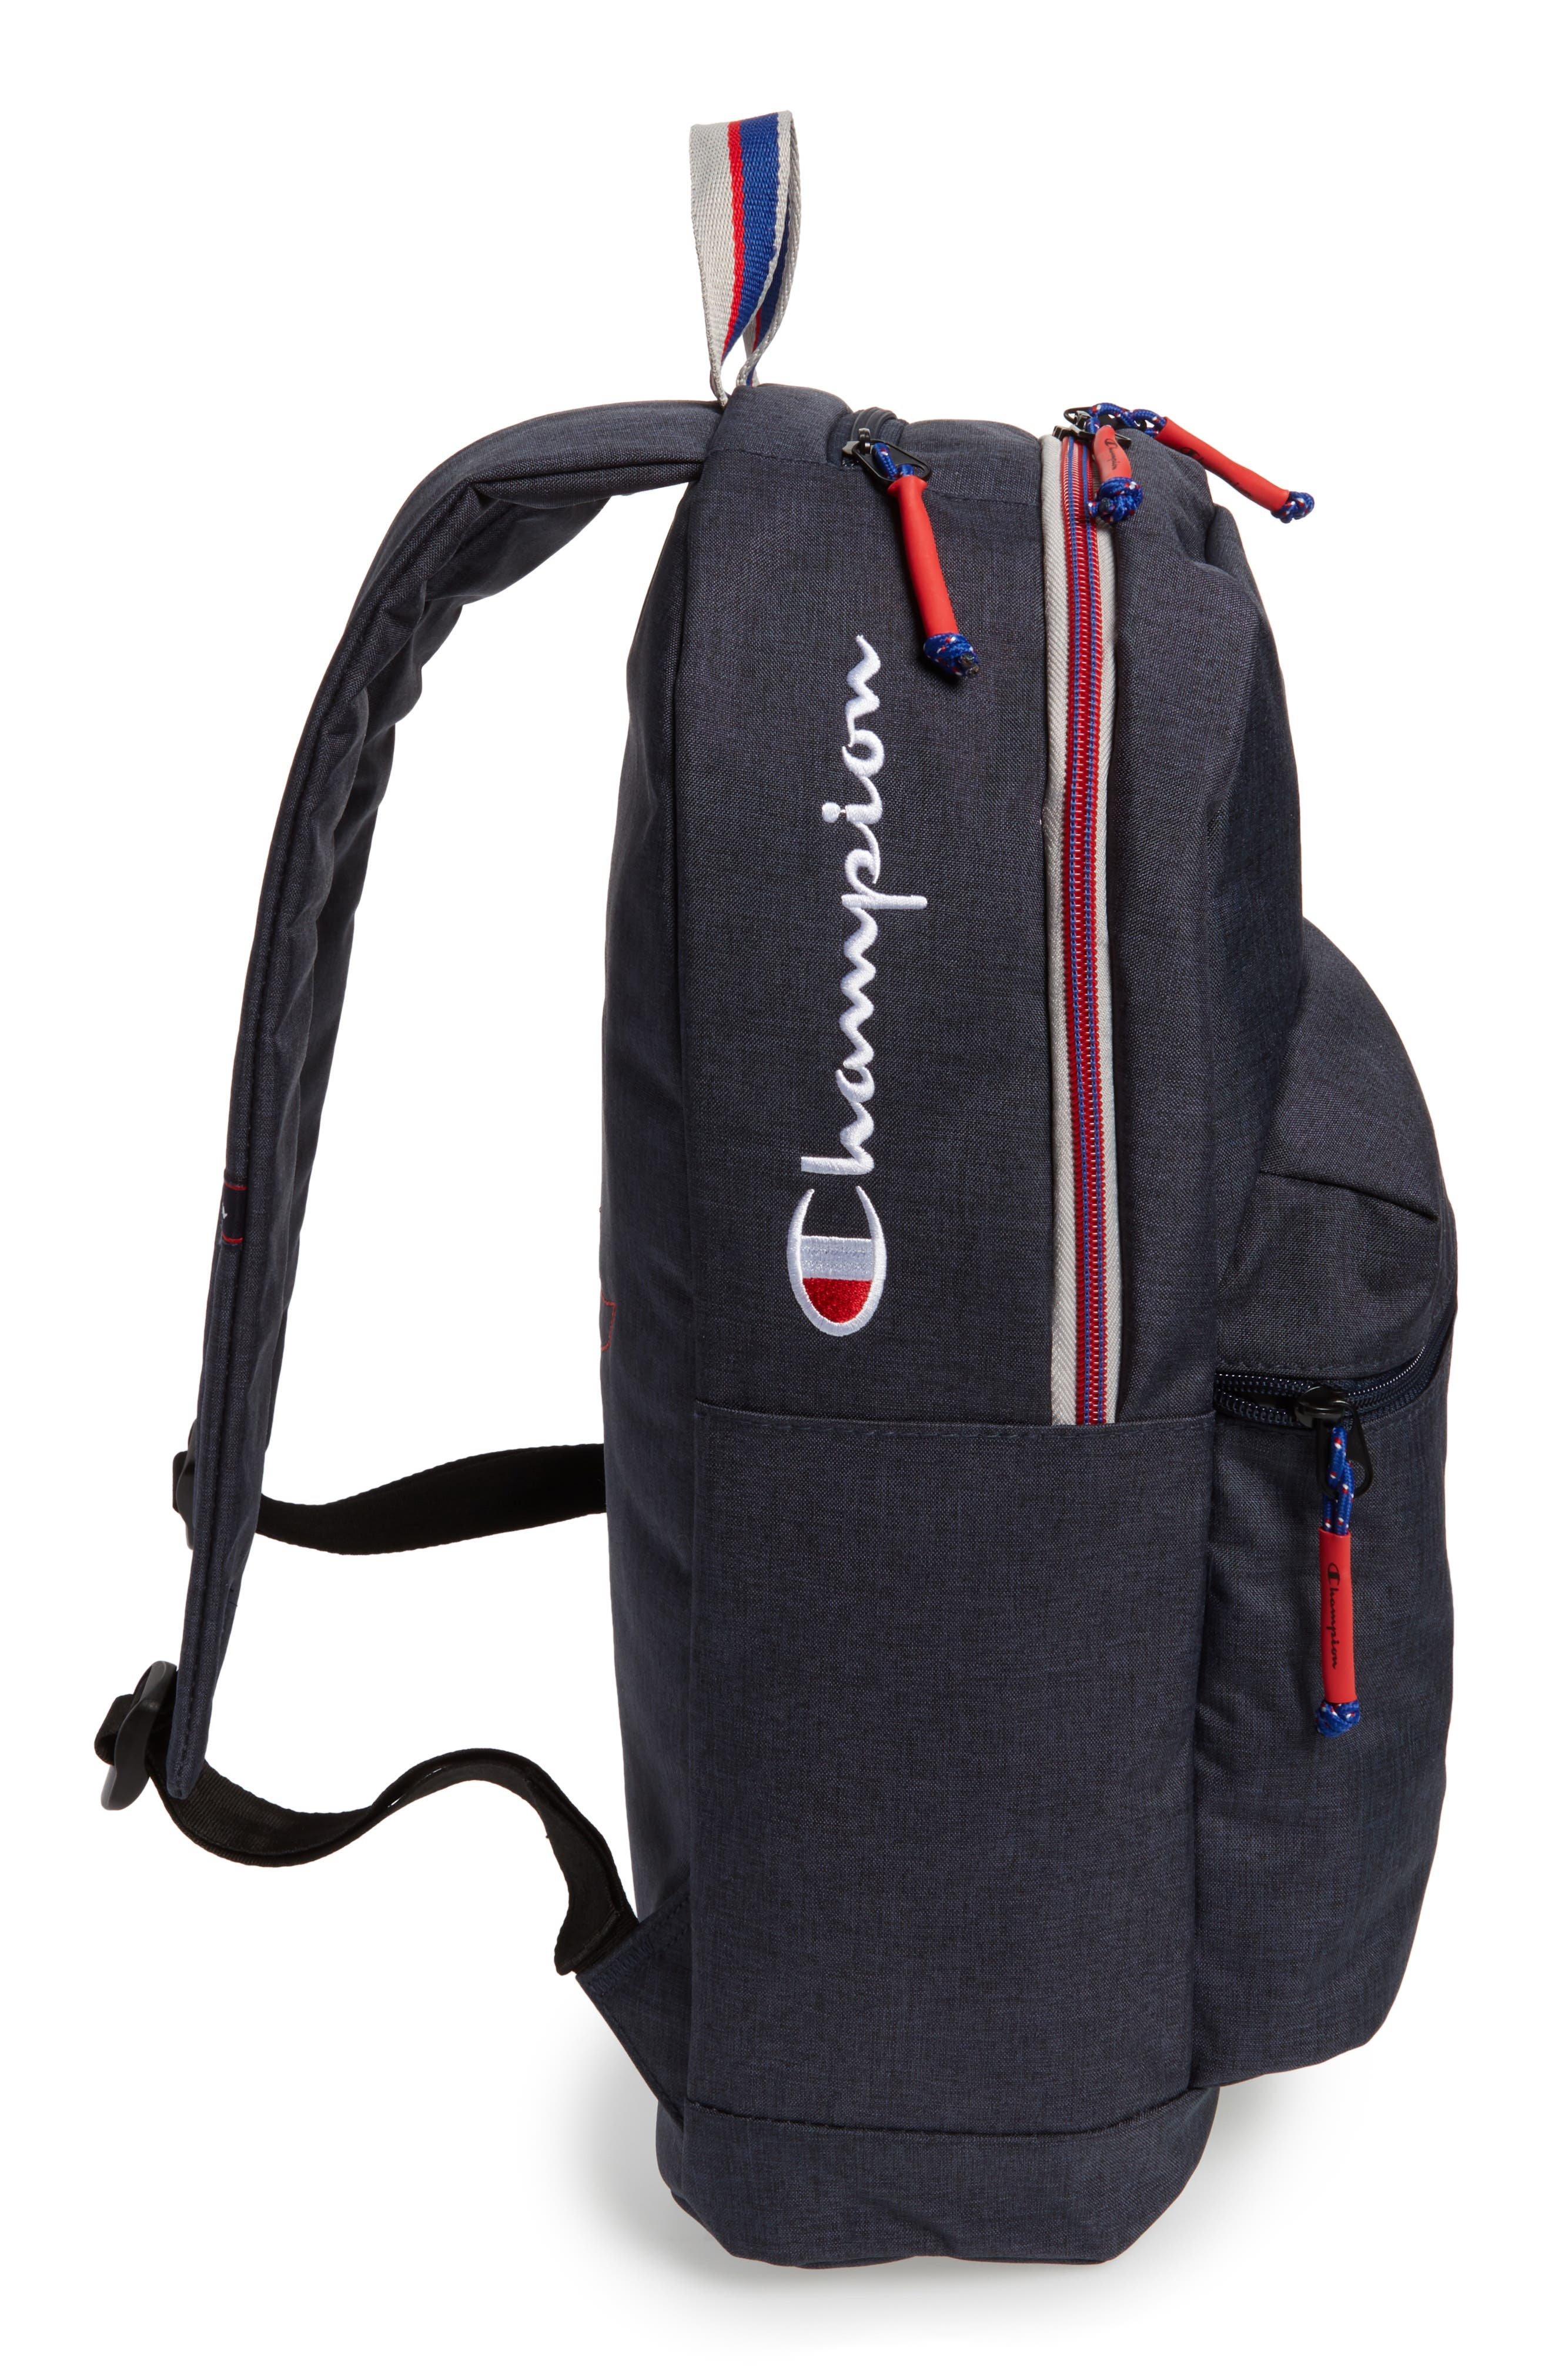 Supercize Backpack,                             Alternate thumbnail 5, color,                             Navy Heather